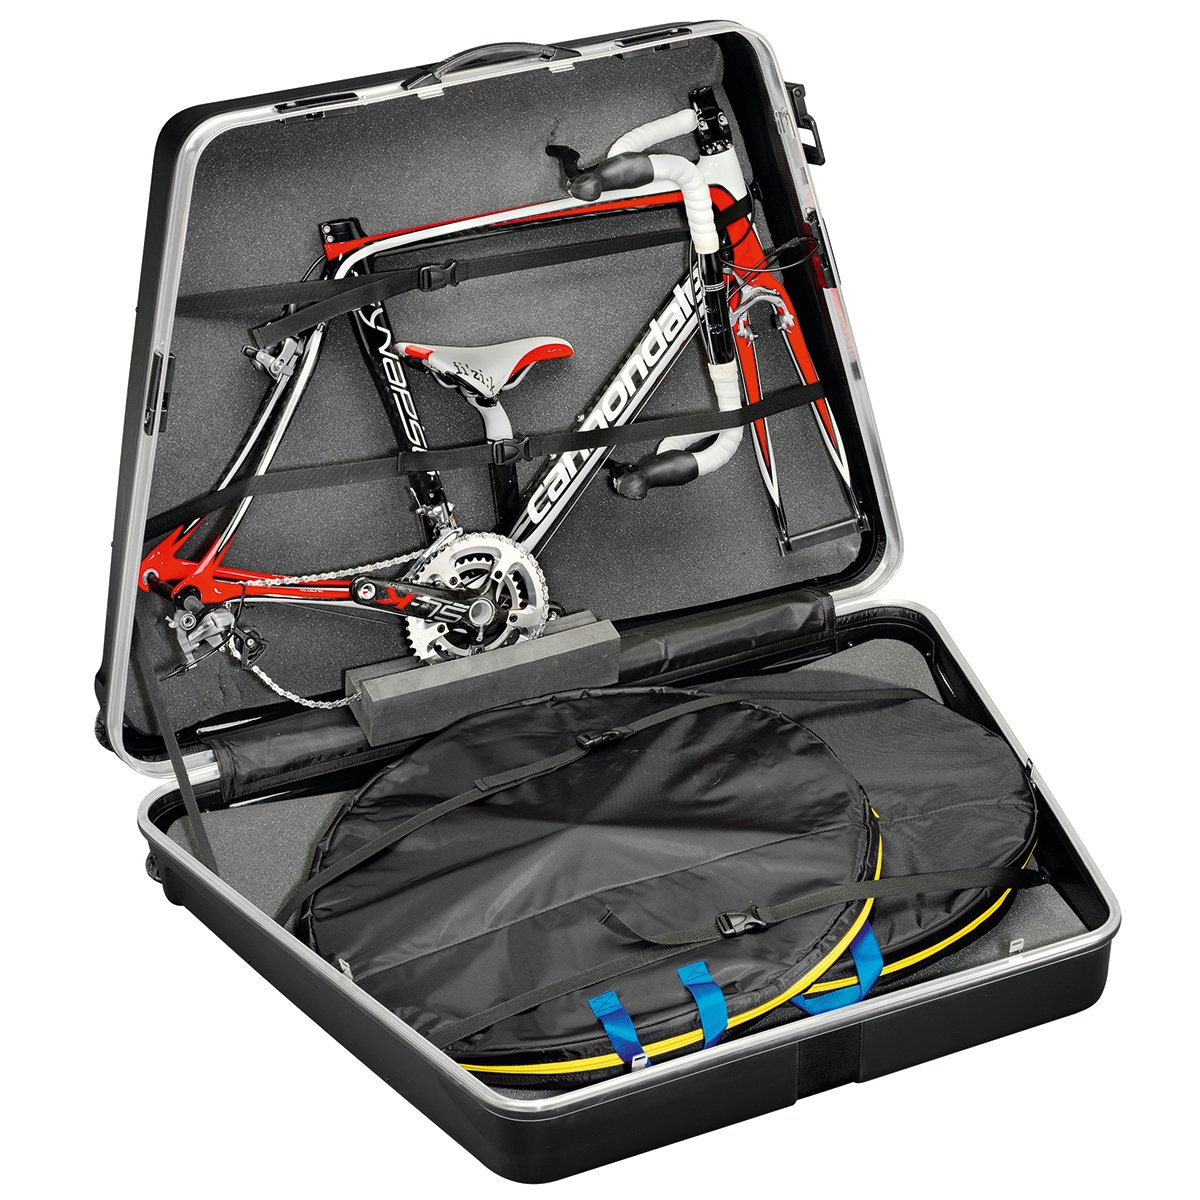 Best road bike travel boxes & bags 2019 for air travel | Cyclist